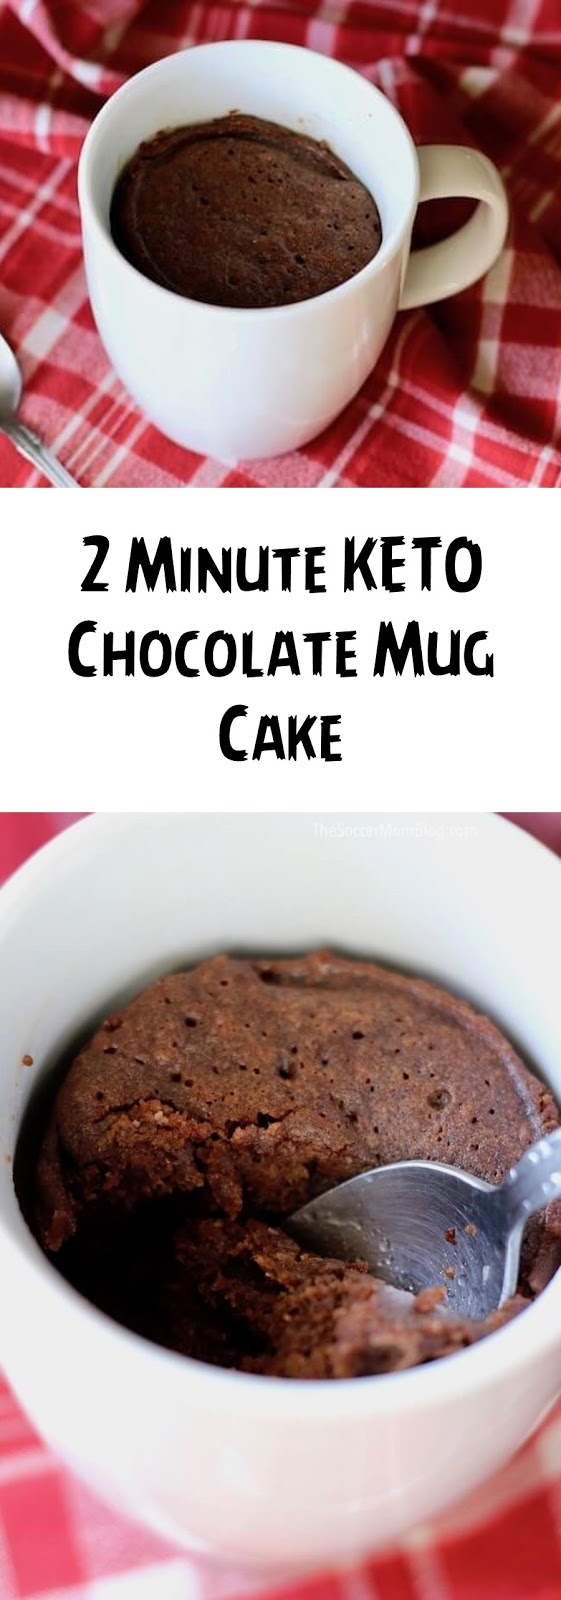 2 Minute KETO Chocolate Mug Cake